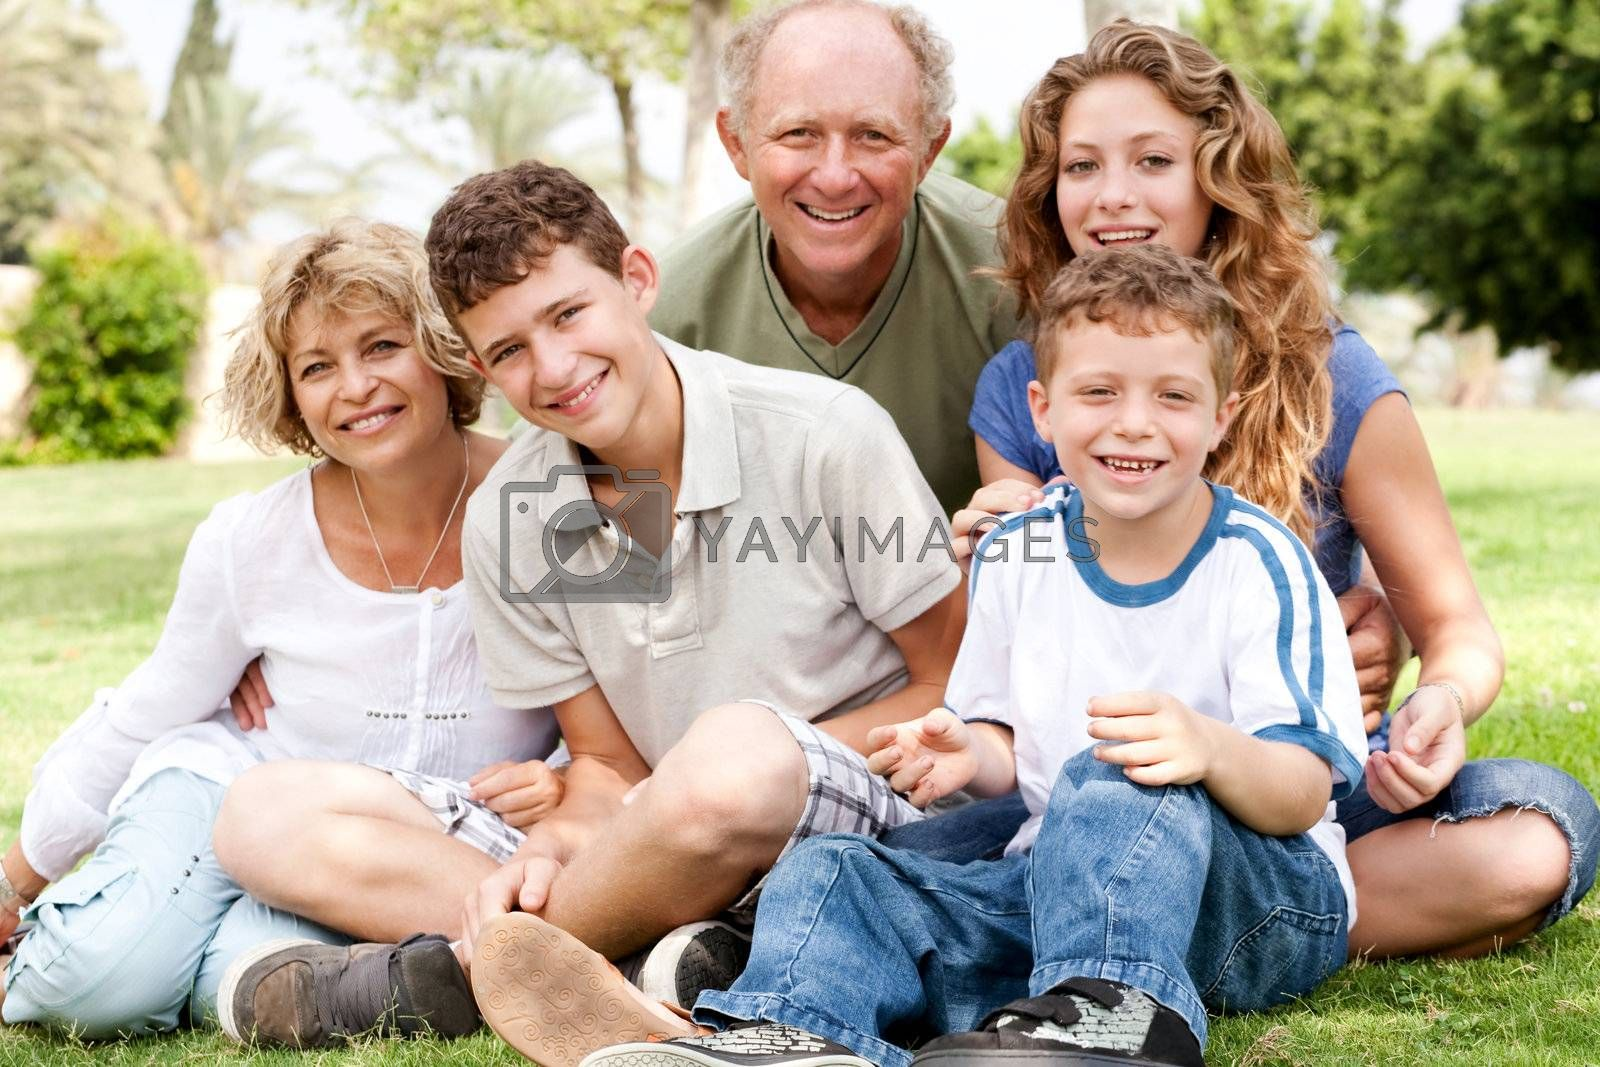 Portrait of happy family of five smiling at camera, relaxing in park